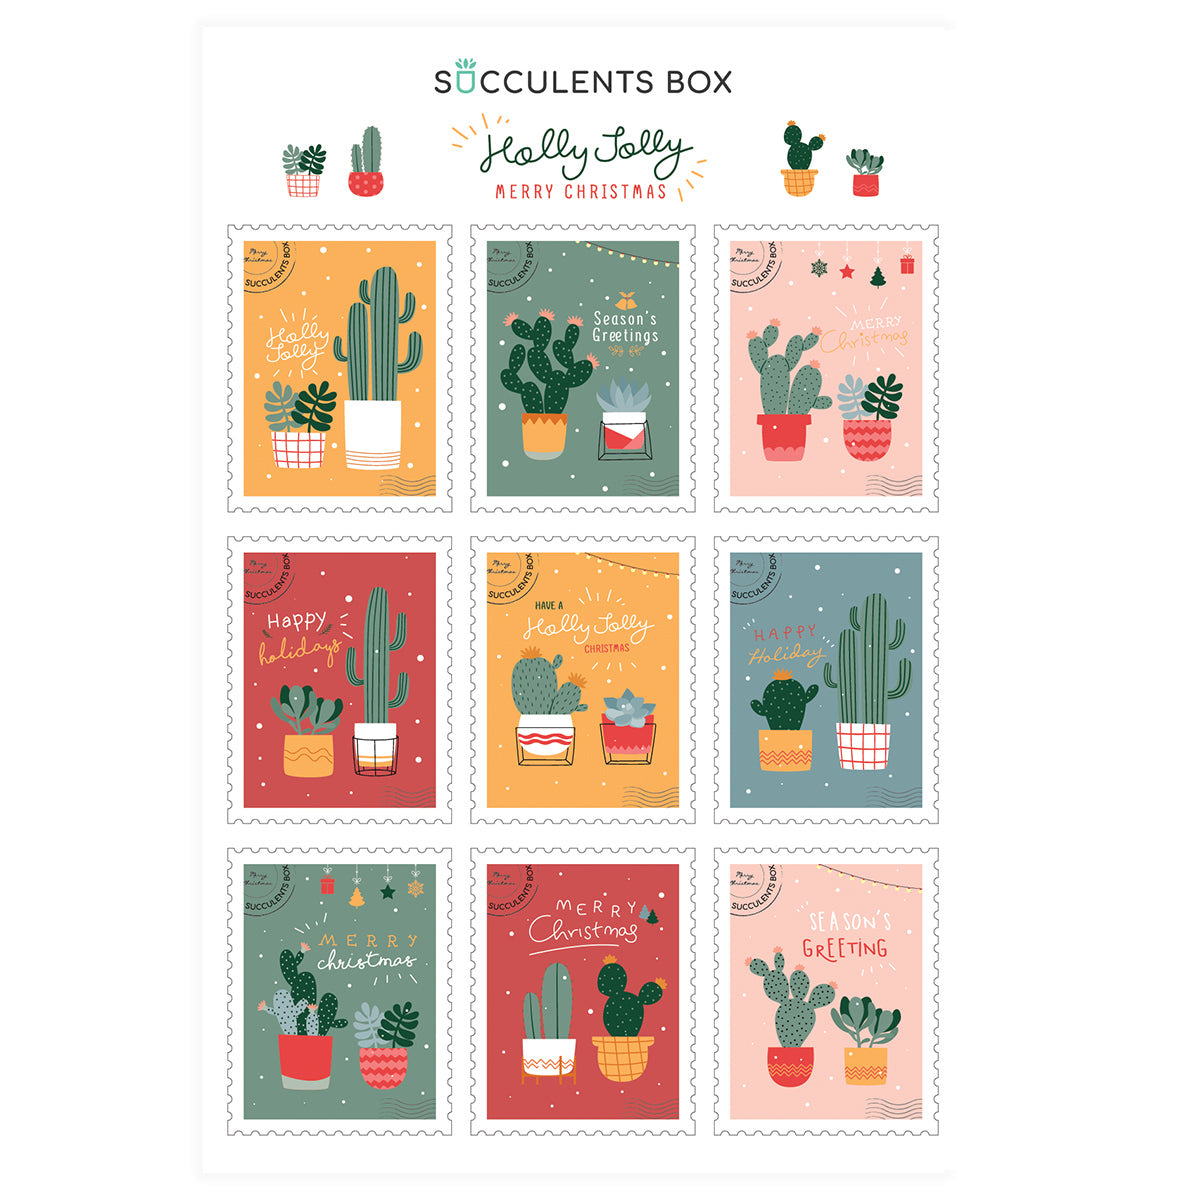 succulent stickers for sale, cactus stickers for sale, succulent craft ideas, succulent gift ideas, cute plant stickers, christmas stickers